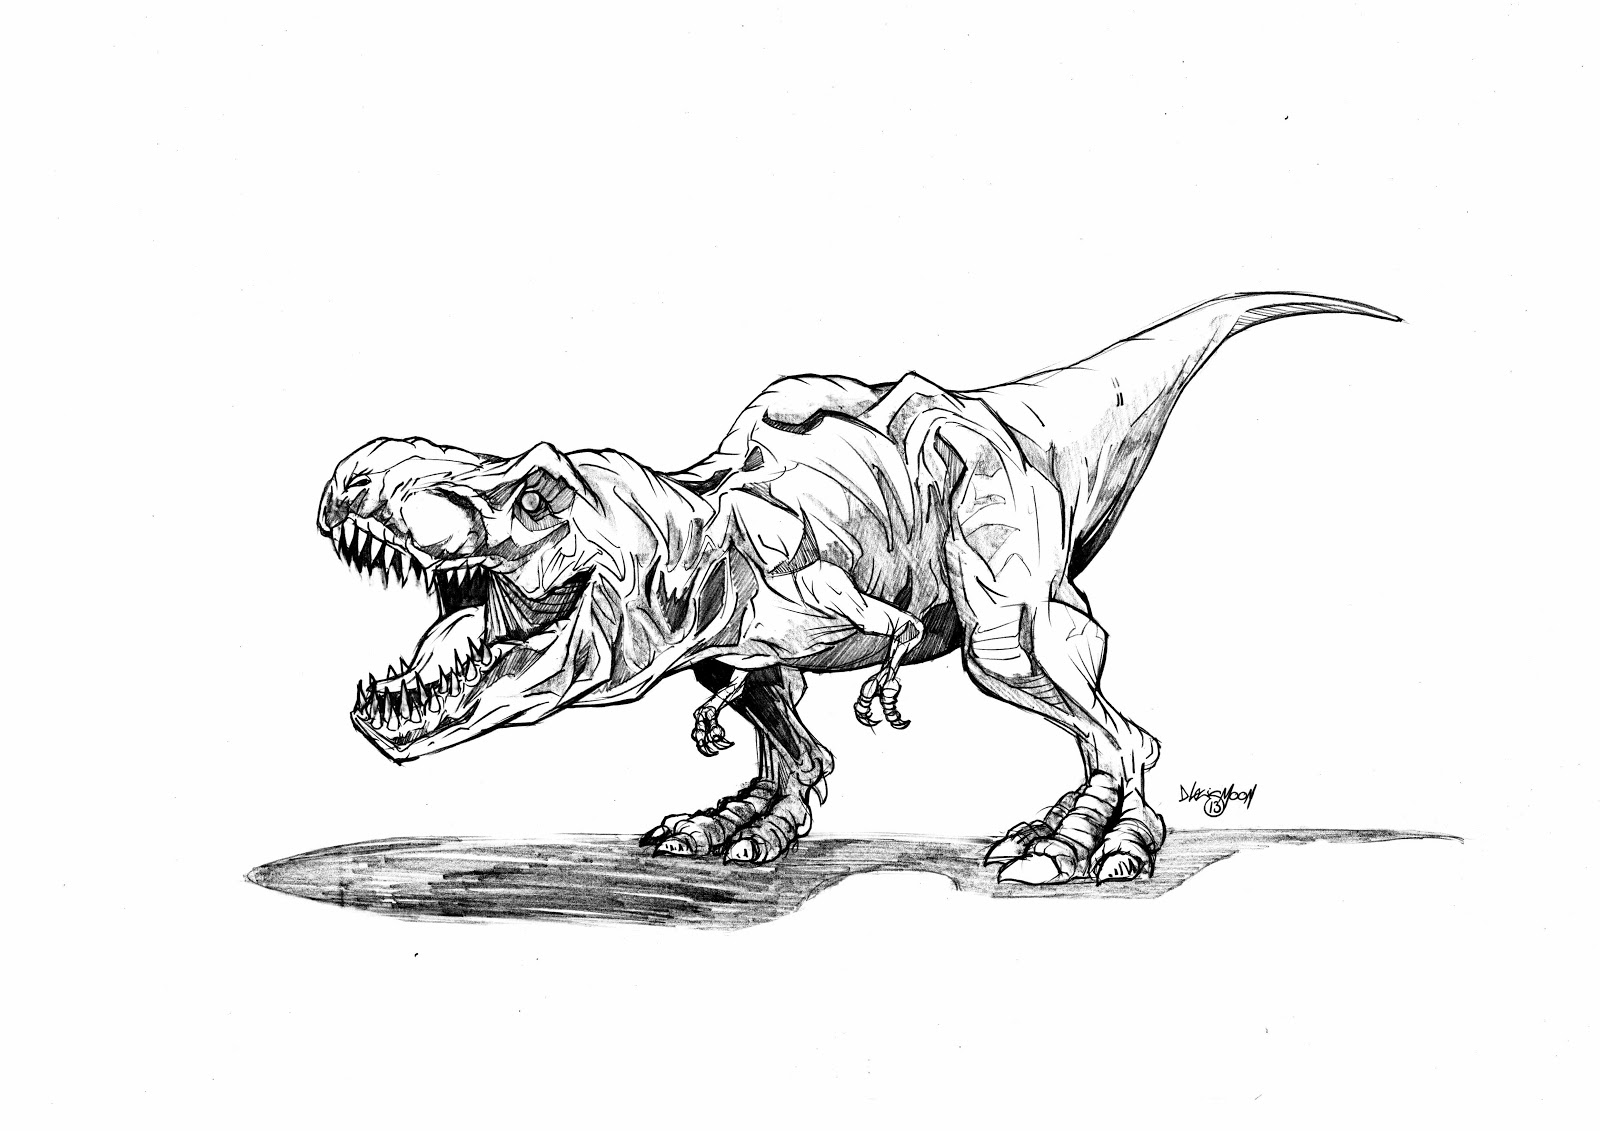 Coloring Pages For T Rex : David moon illustration design